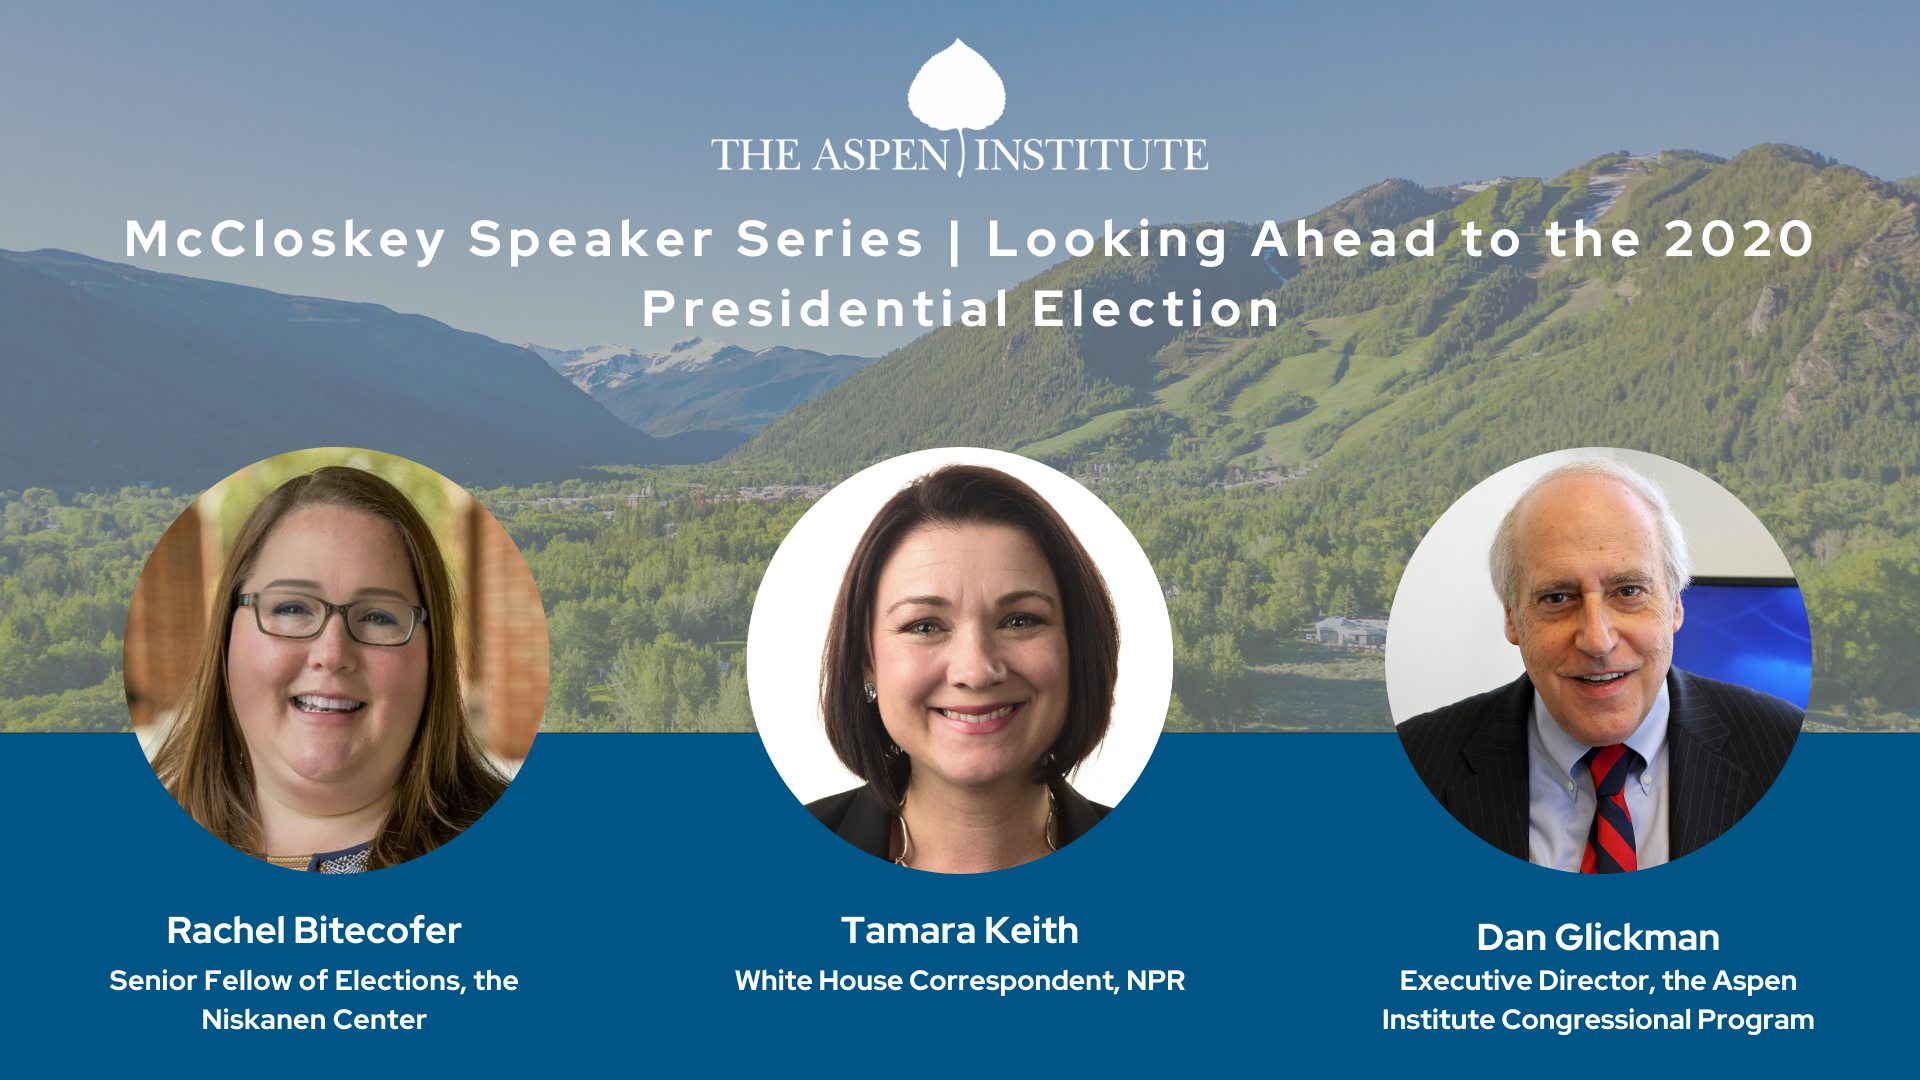 Looking Ahead to the 2020 Presidential Election